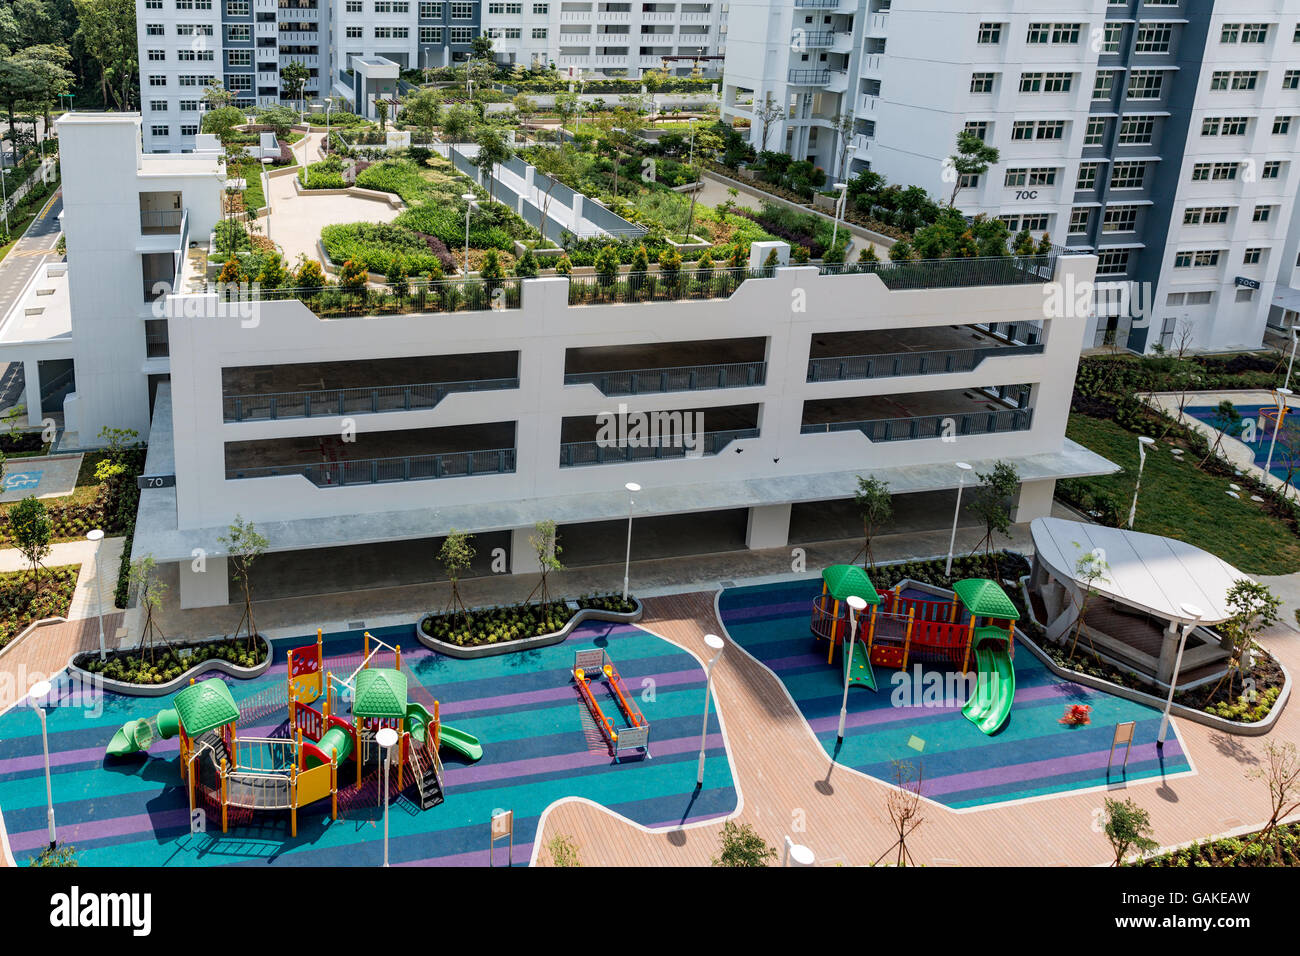 Roof Top Garden And Childrens Playground In New Singapore Public Housing Development Board